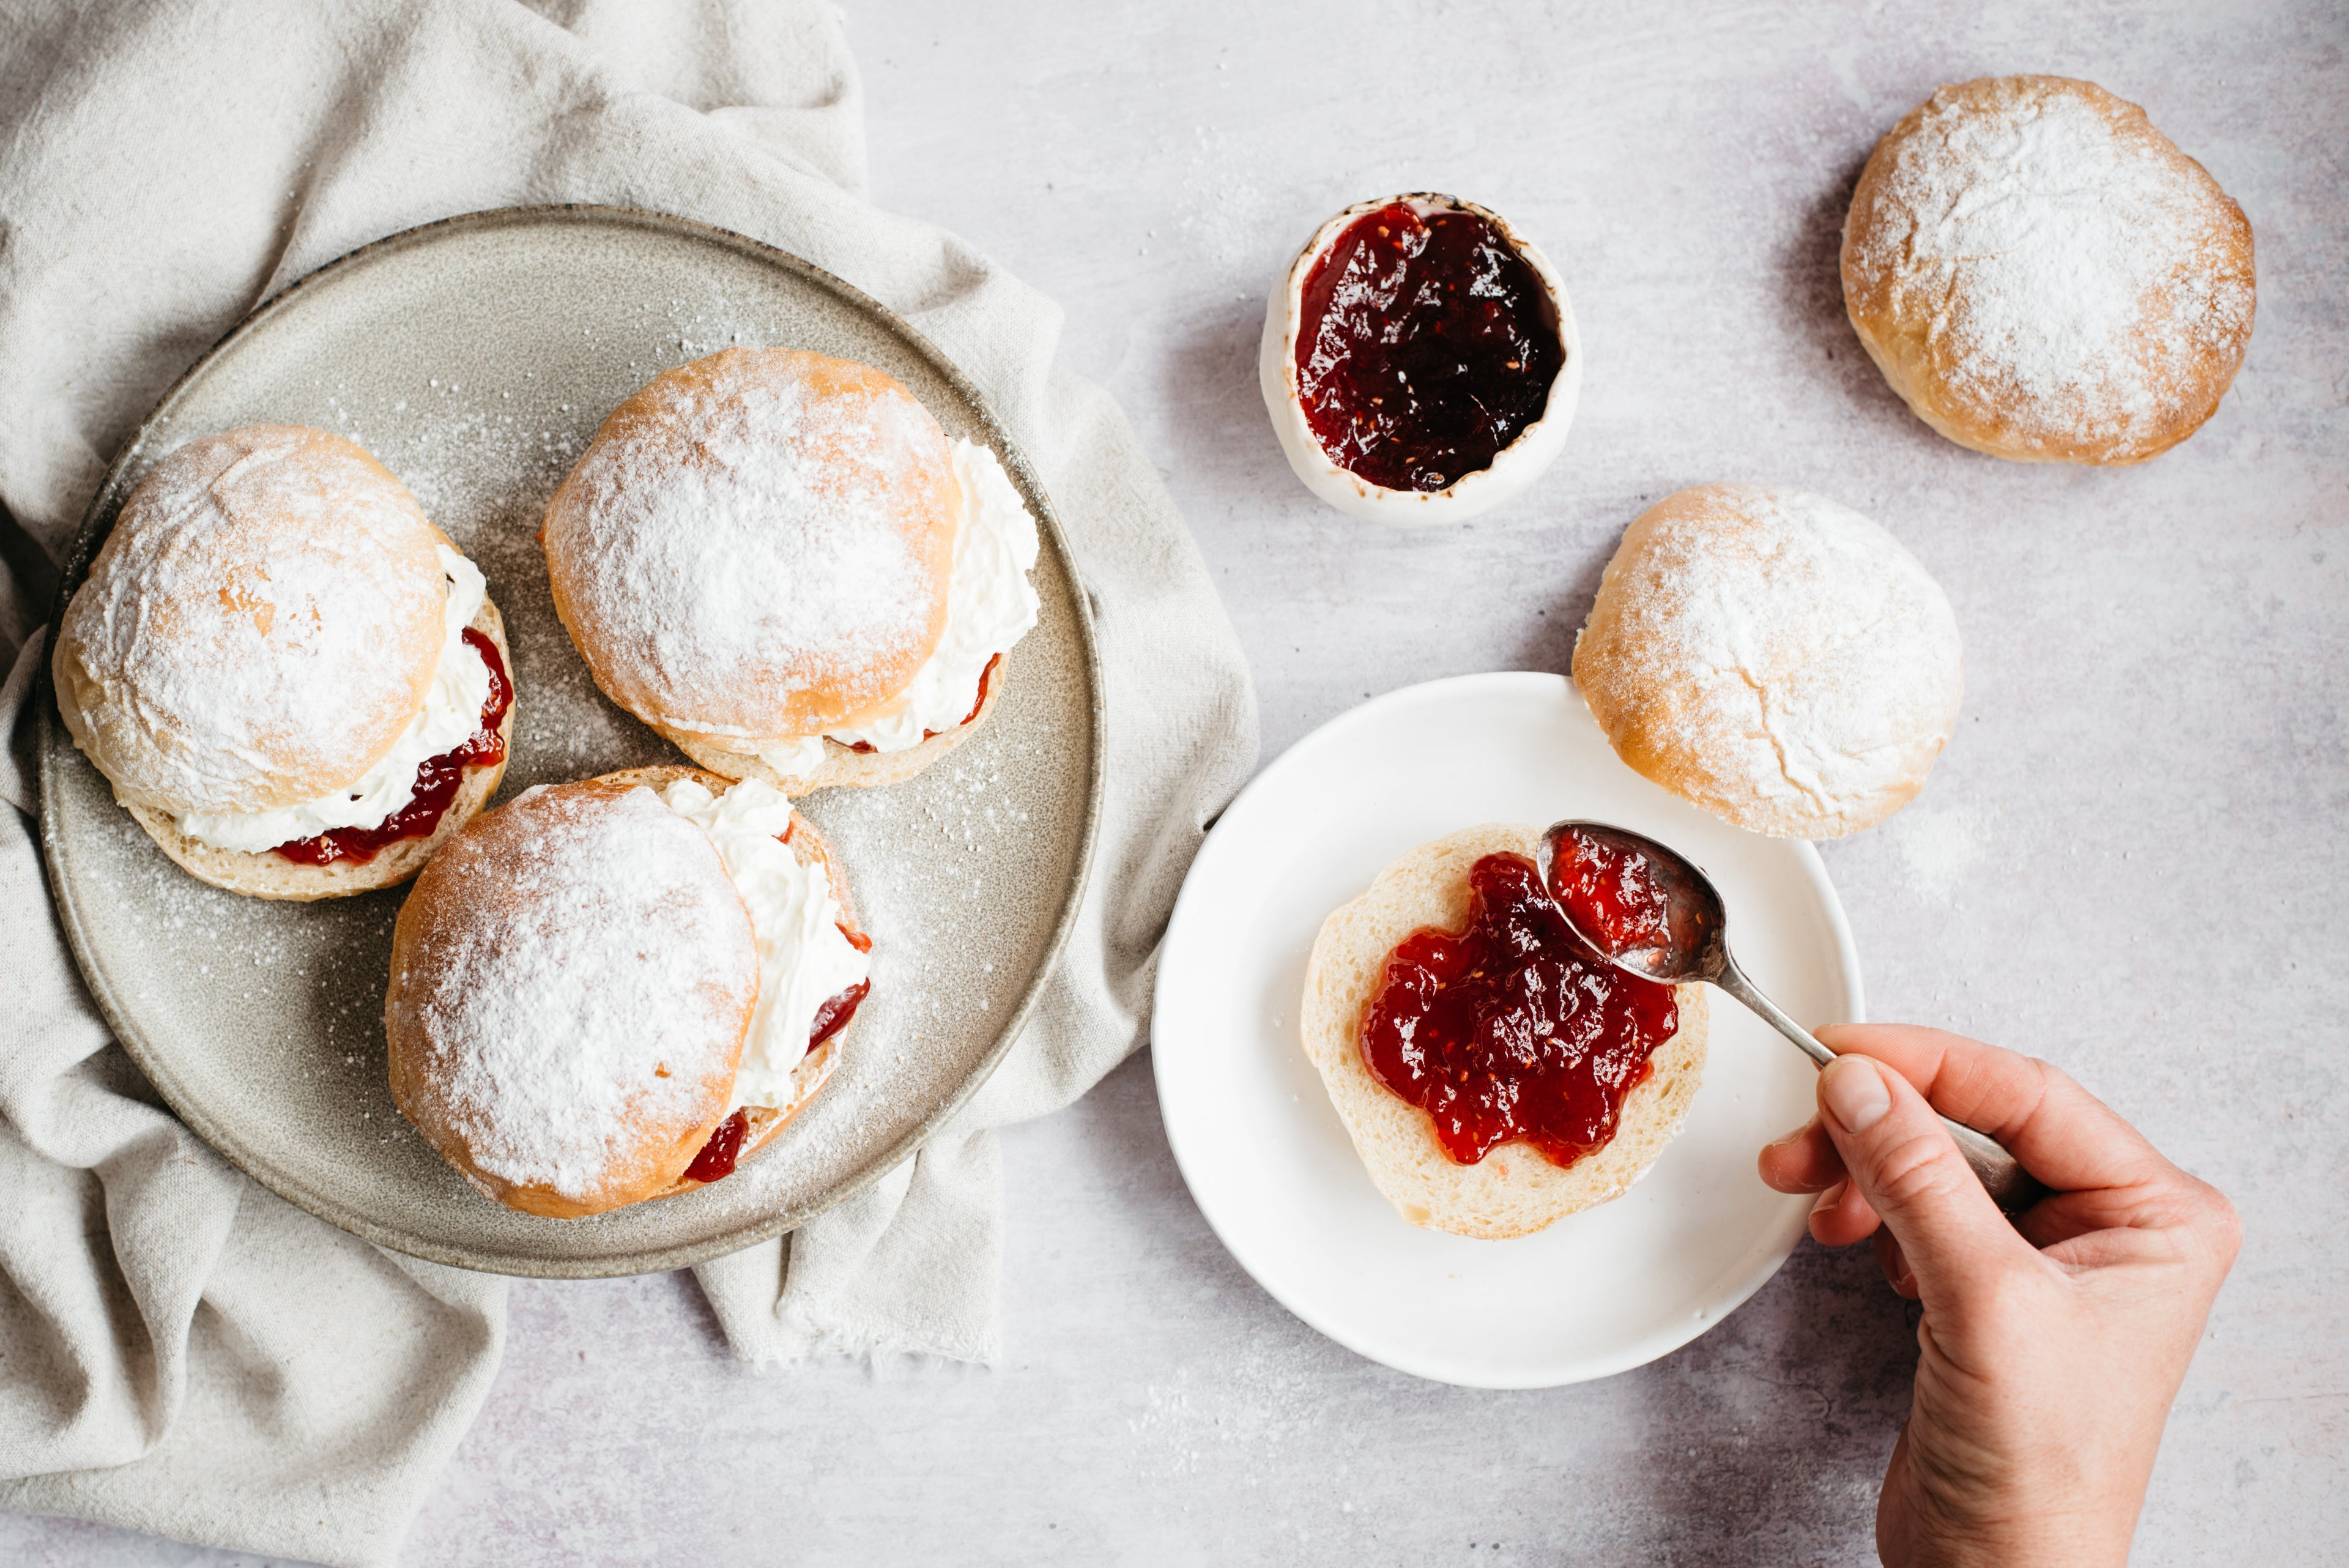 Top view of a plate of Devonshire Splits with a hand spreading jam over half of a Devonshire Split with a spoon, next to a bowl of jam